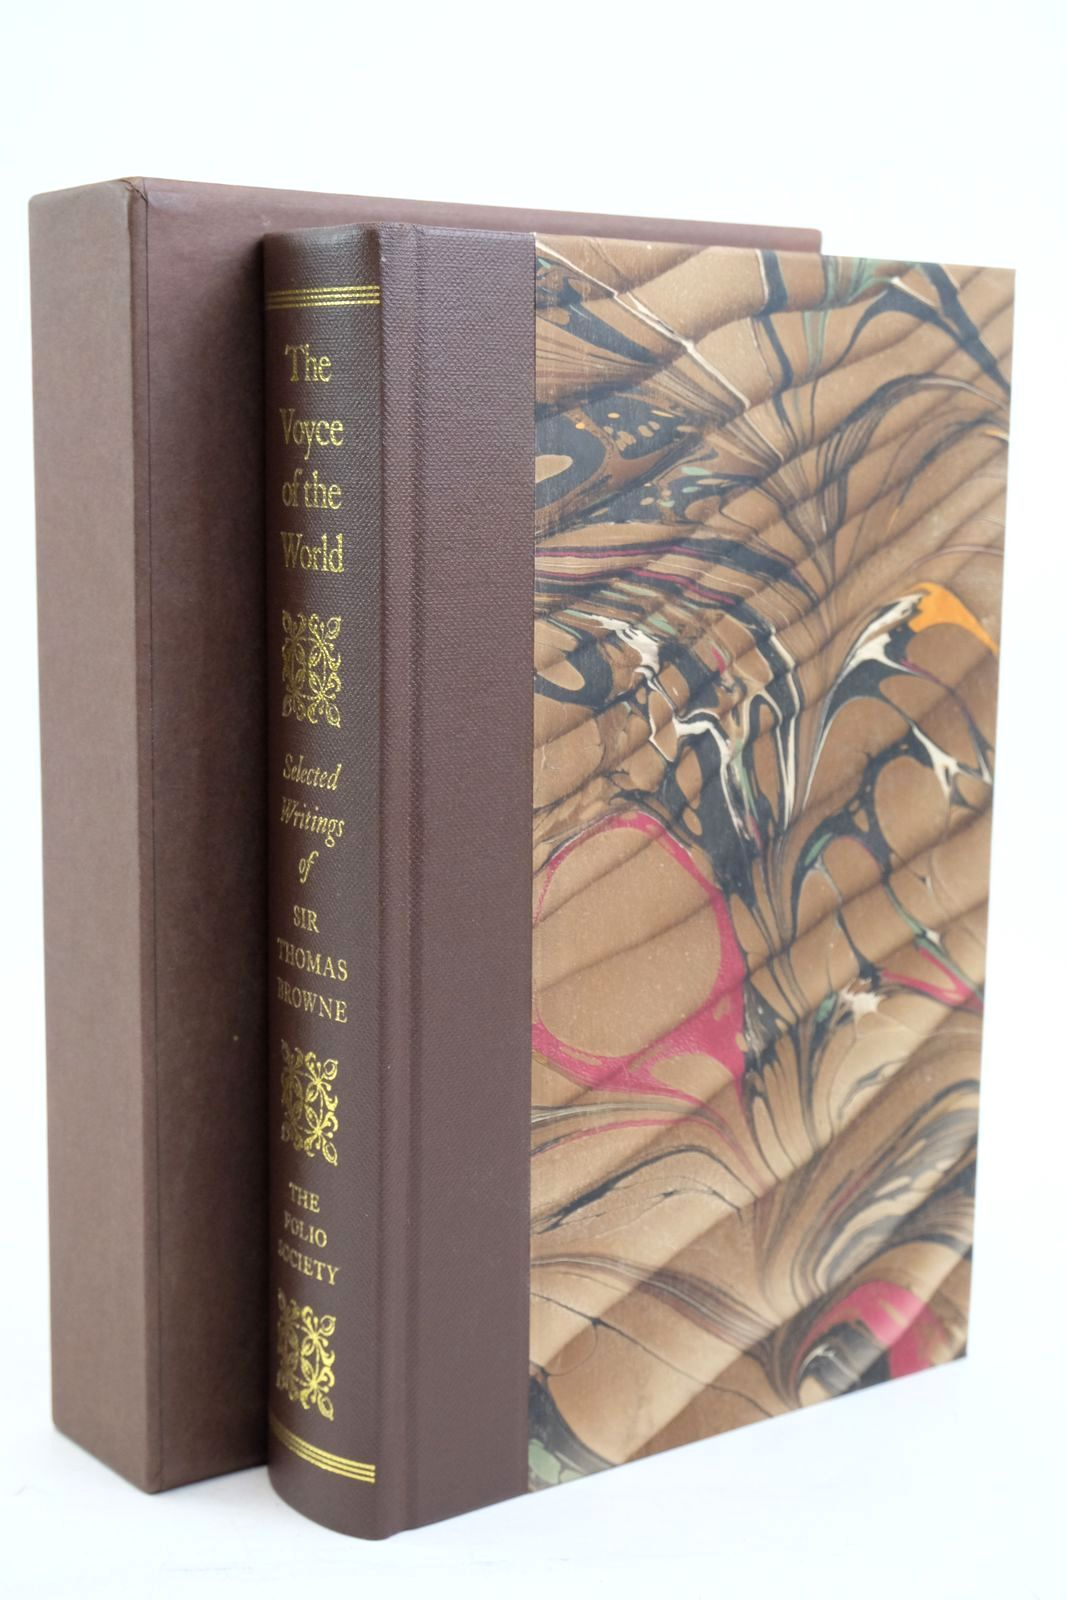 Photo of THE VOYCE OF THE WORLD written by Browne, Thomas Keynes, Geoffrey Mackintosh-Smith, Tim published by Folio Society (STOCK CODE: 1321066)  for sale by Stella & Rose's Books